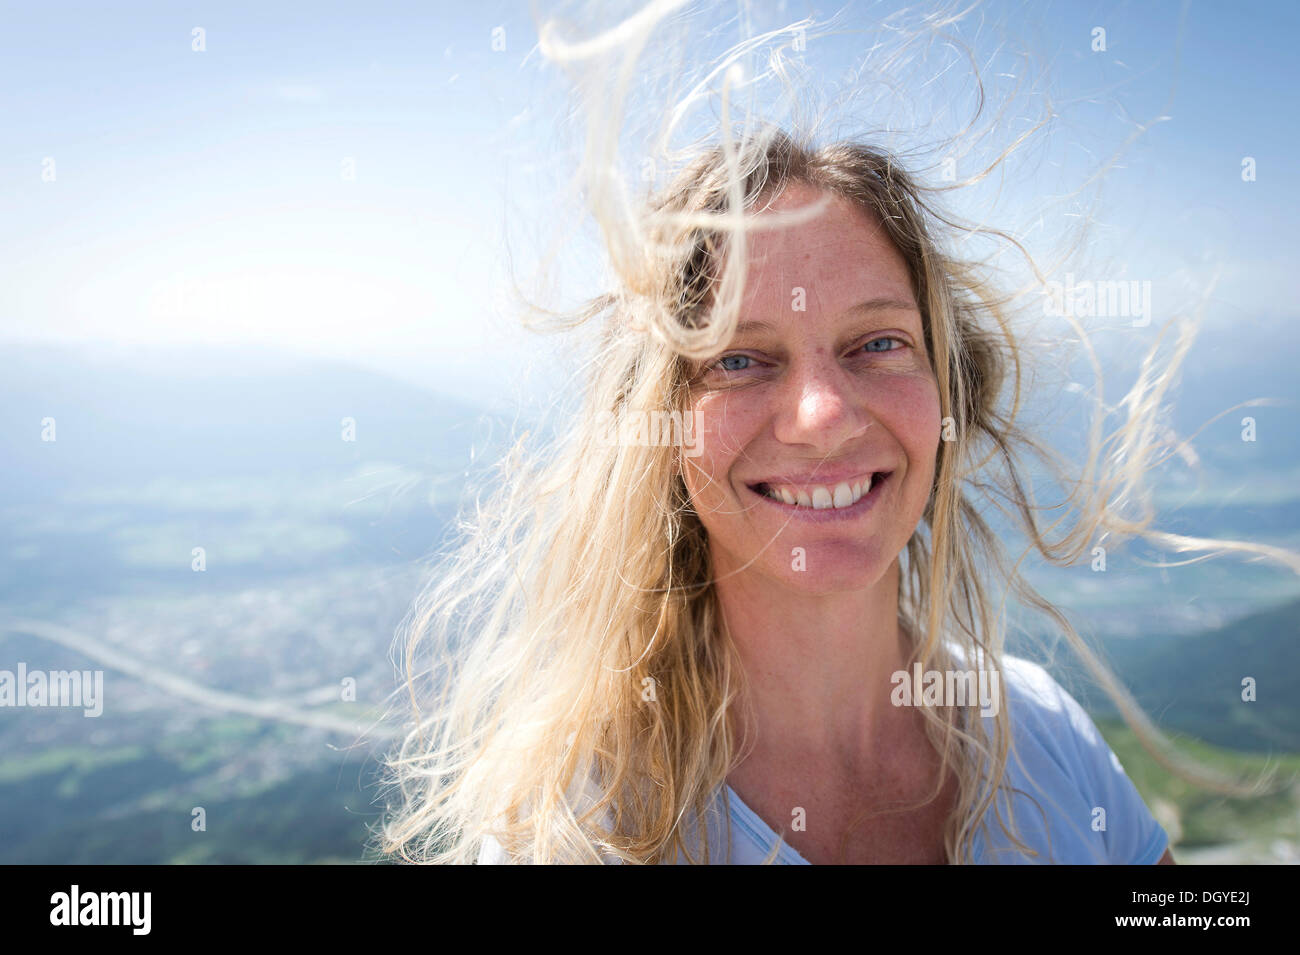 Woman, early 40s, with her hair blowing in the wind - Stock Image